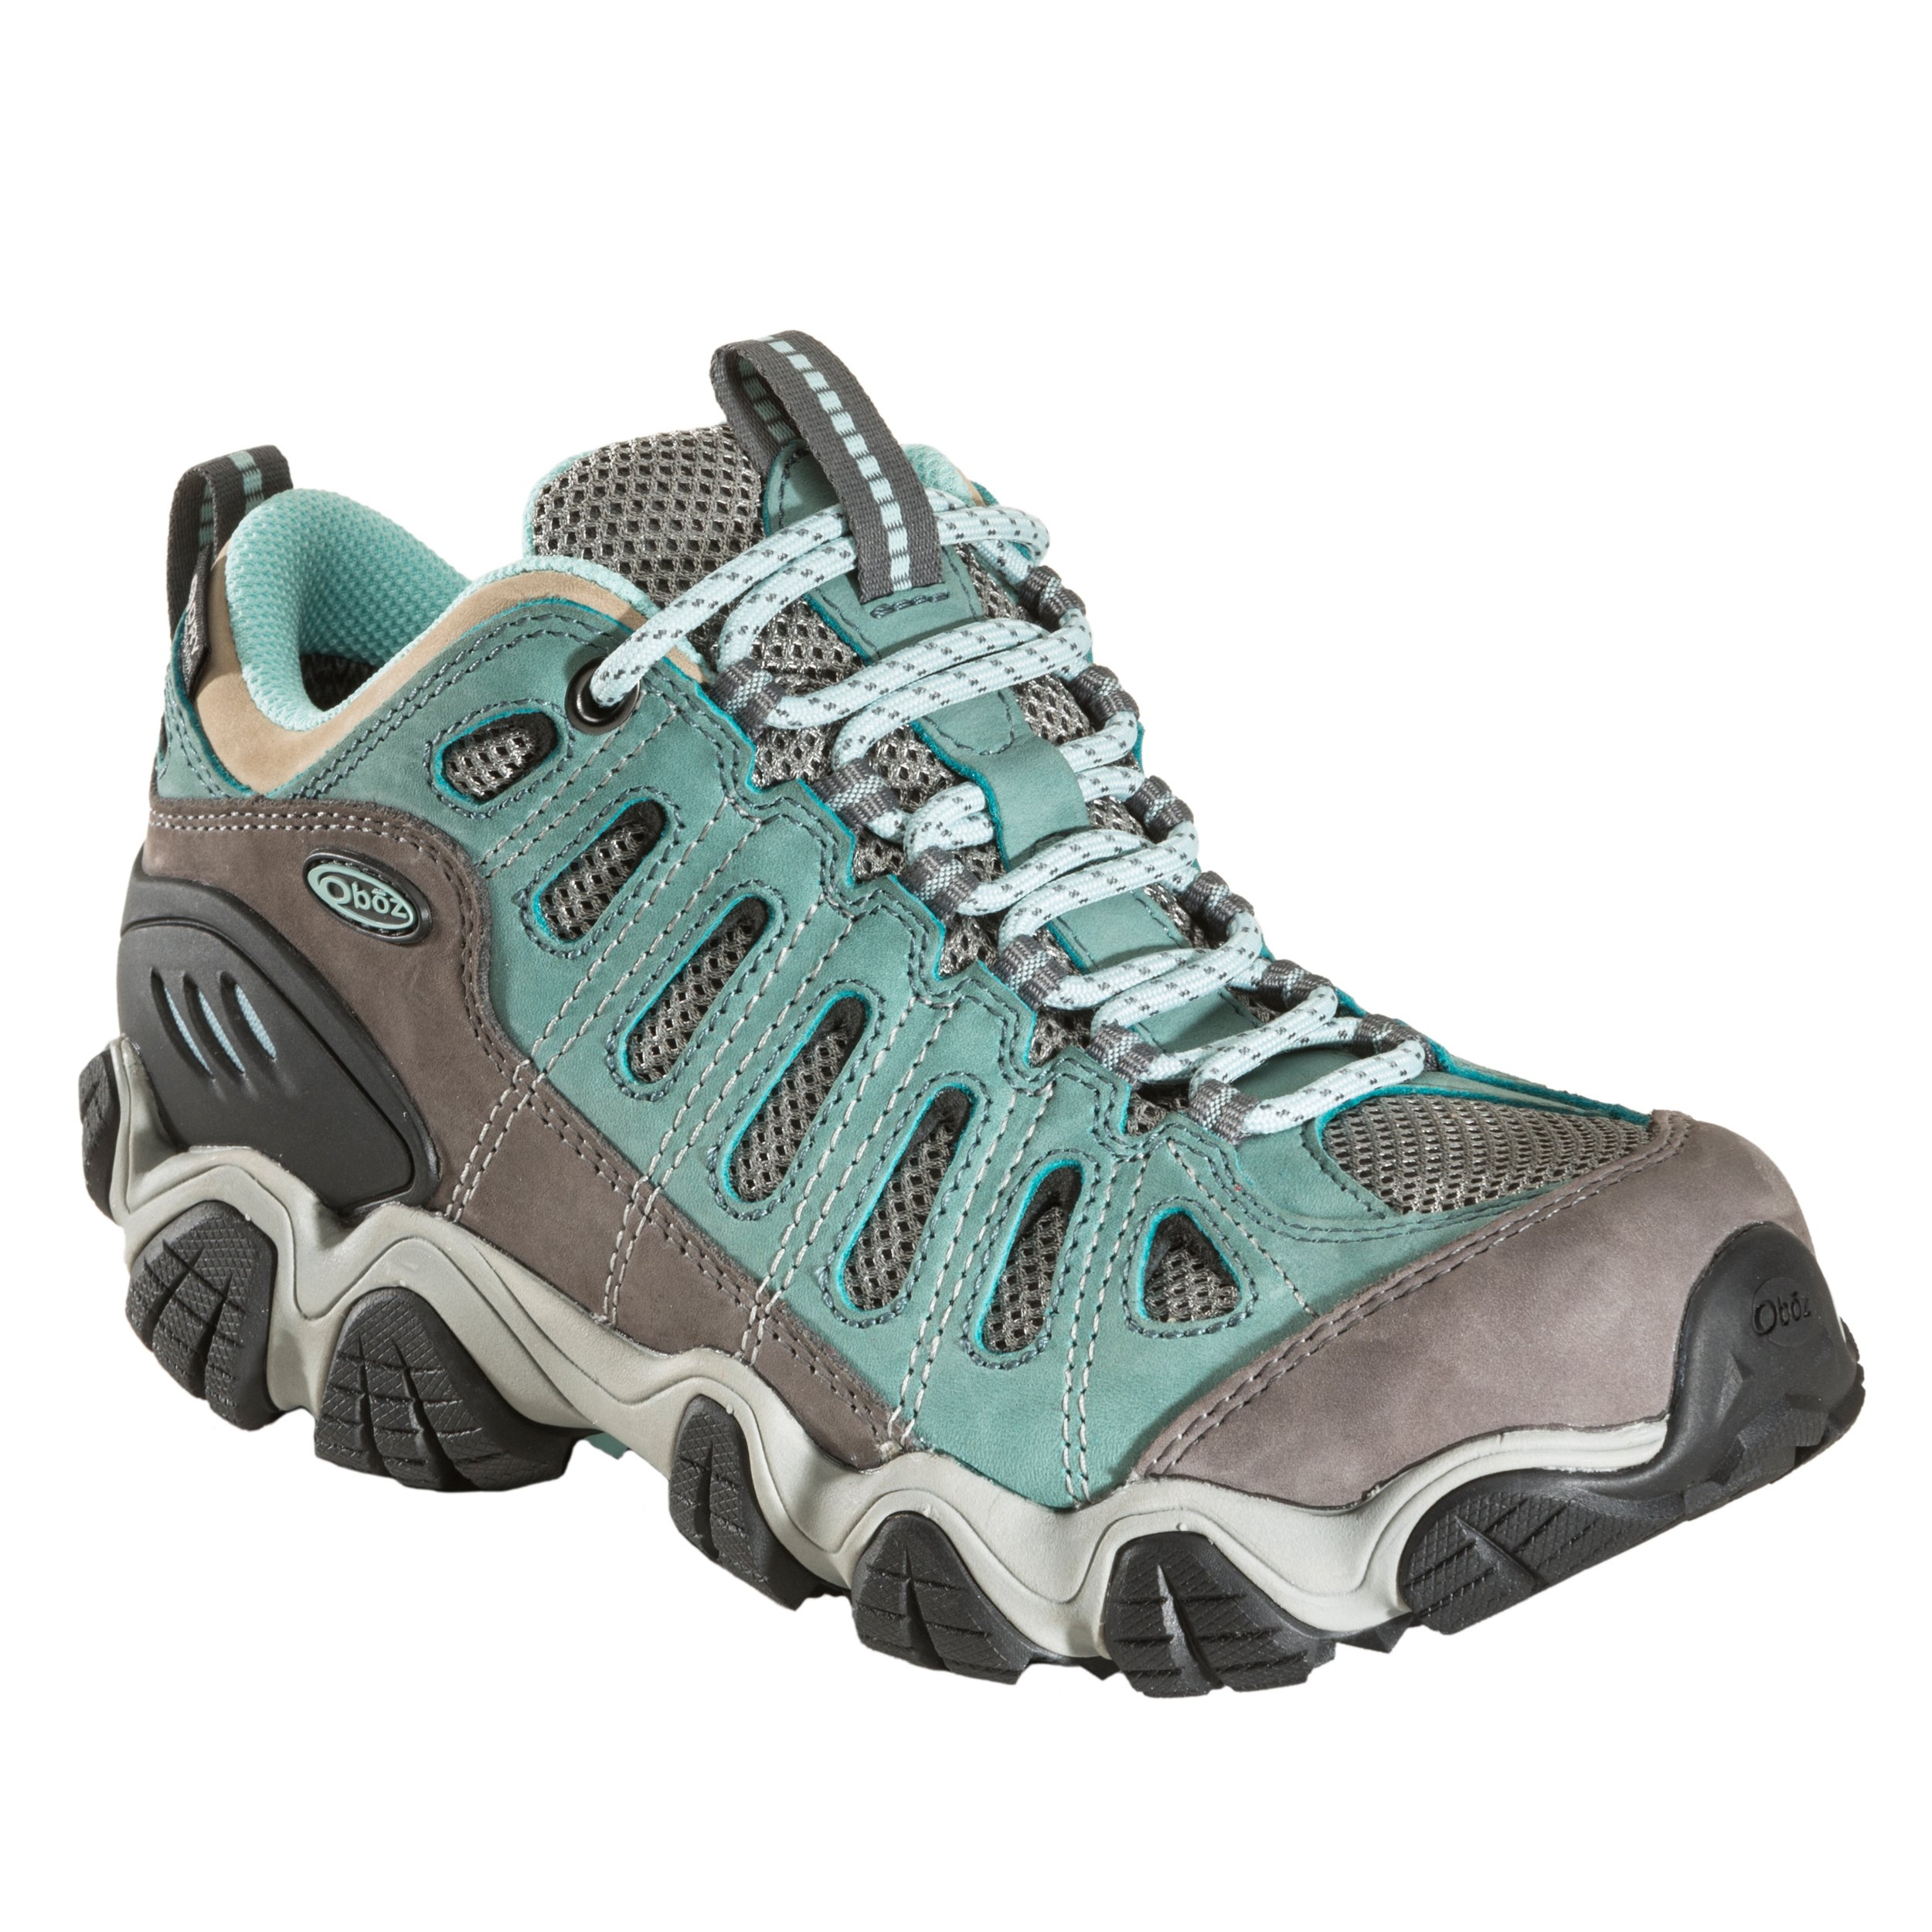 Oboz Sawtooth Low BDry Hiking Shoe - Women's Mineral Blue 8 by Oboz (Image #1)